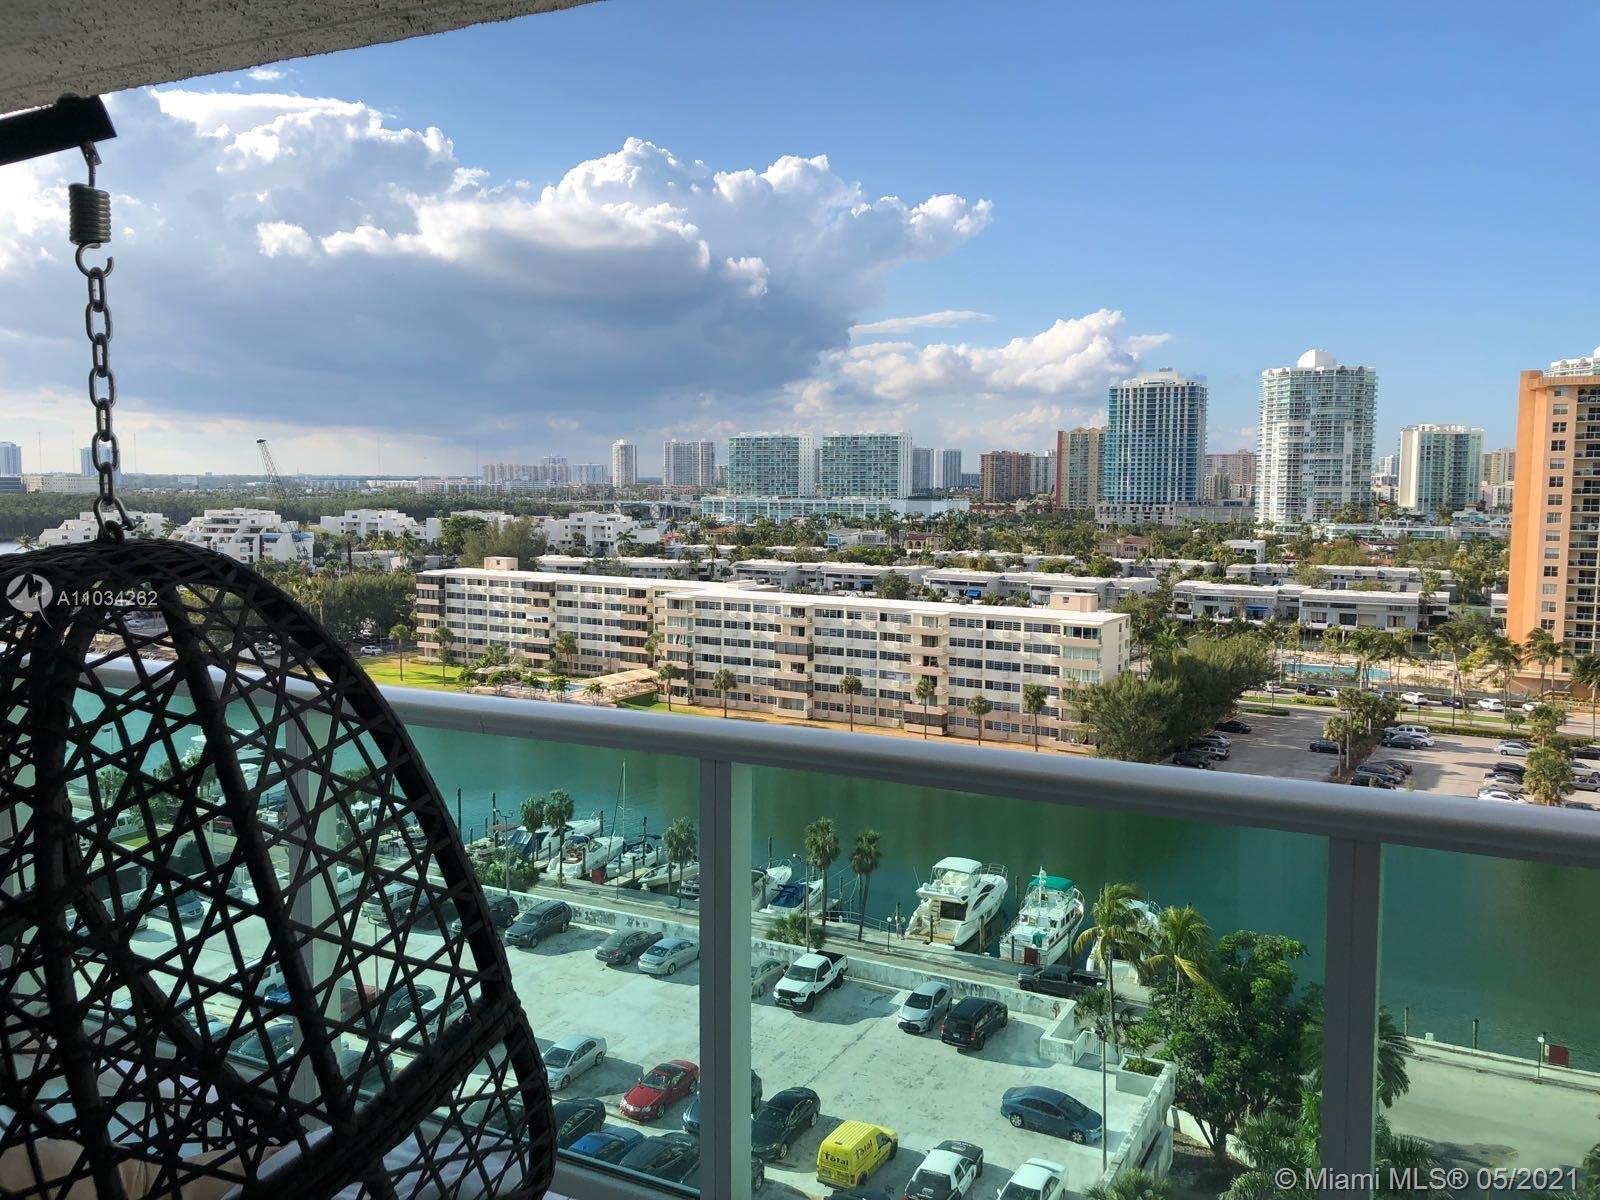 Nicely renovated unit, 2 bedroom and 2 full baths overlooking canal, intracoastal and the city.  Ma